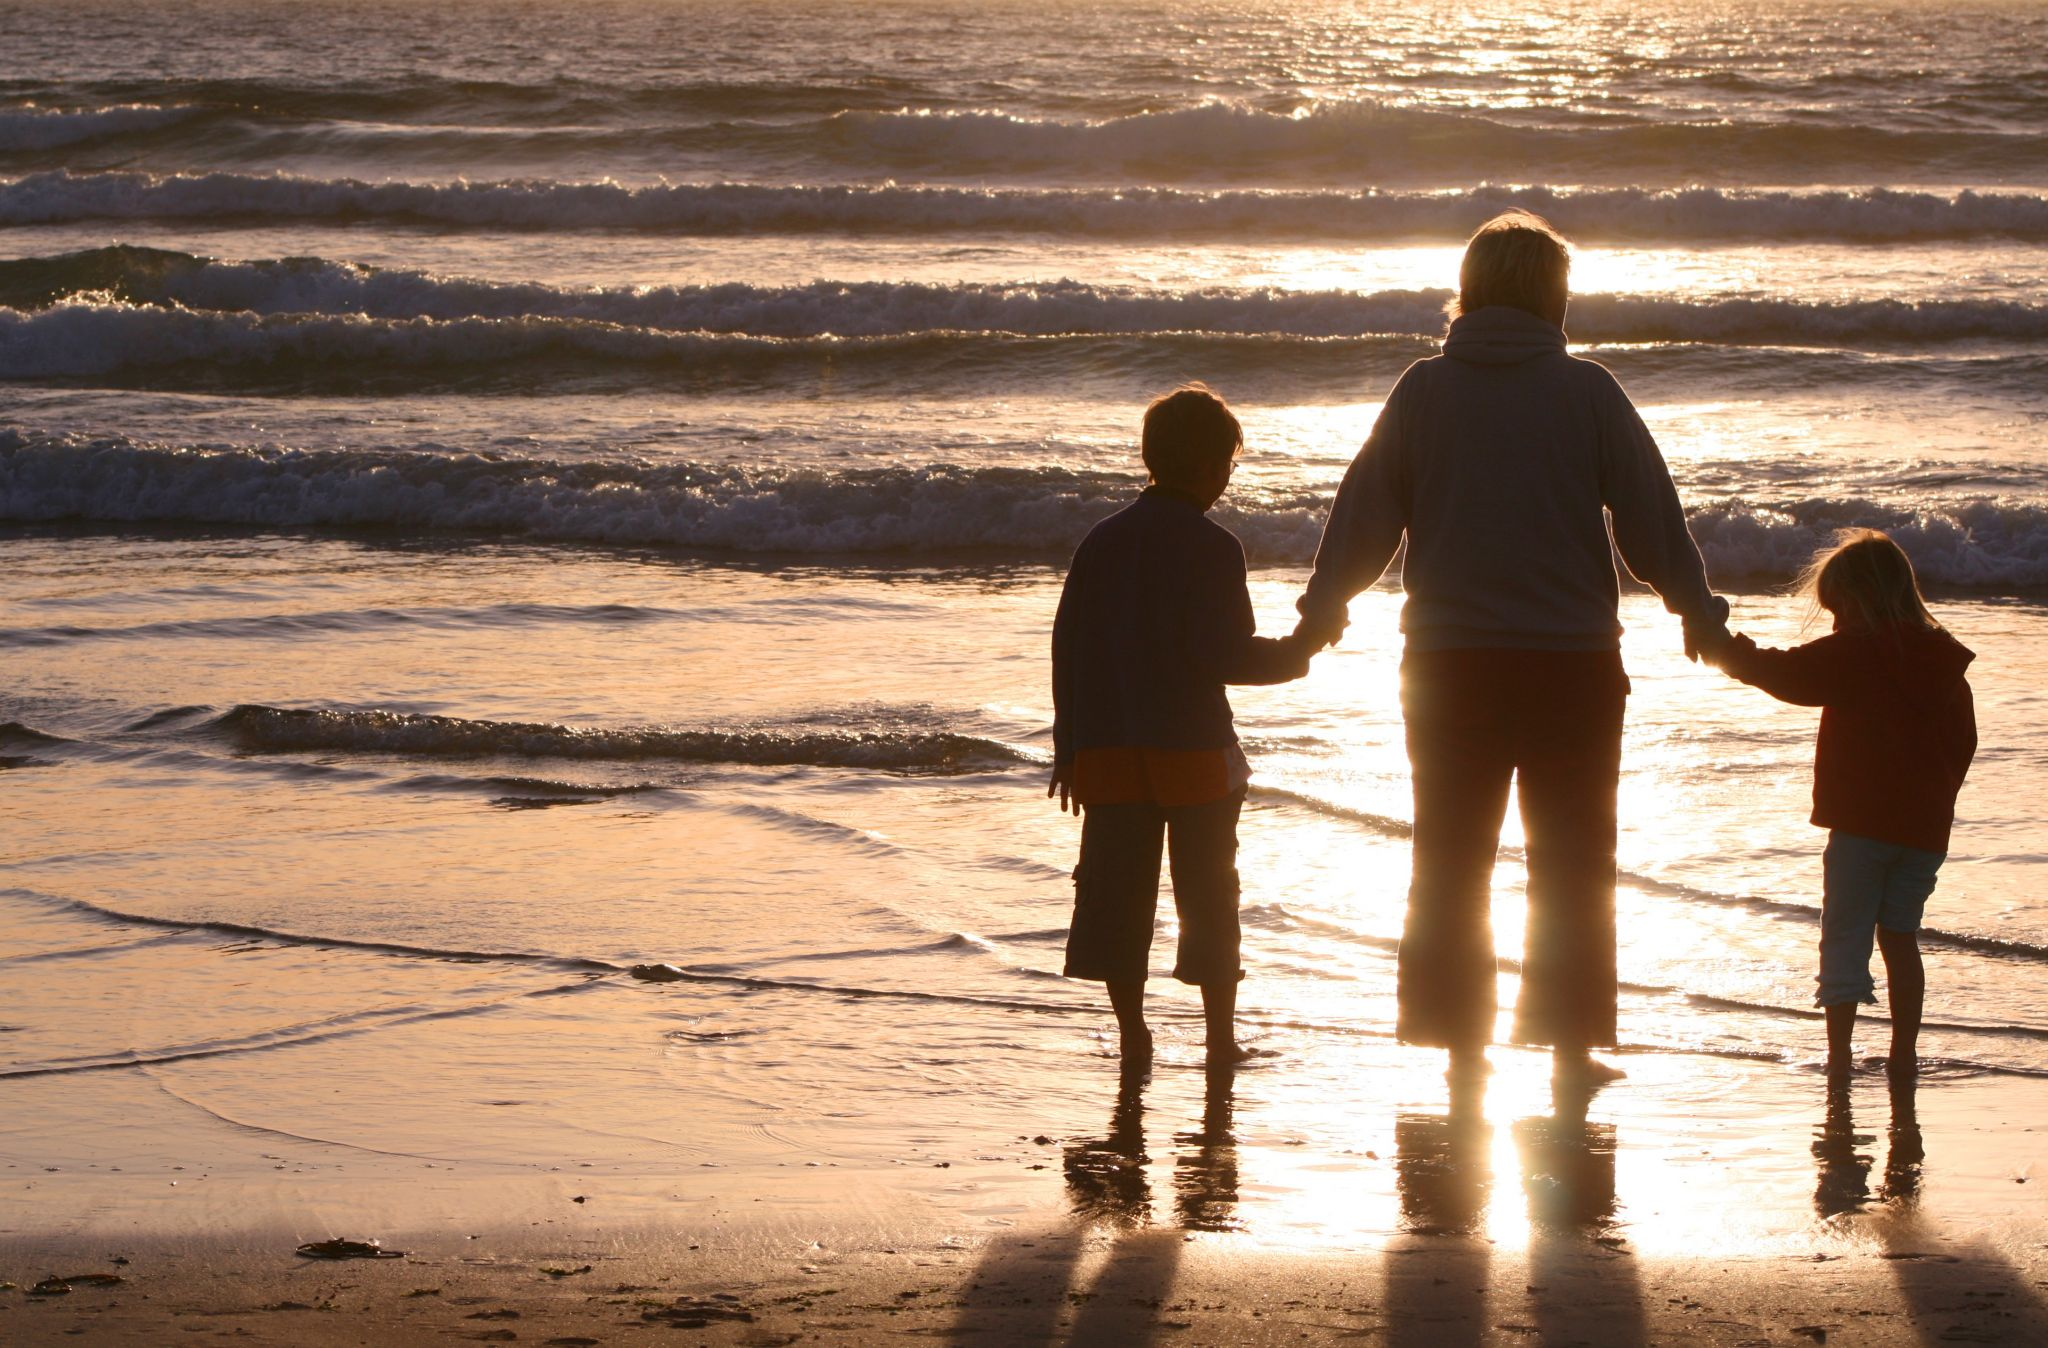 winter family travel health tips - man on beach with 2 children